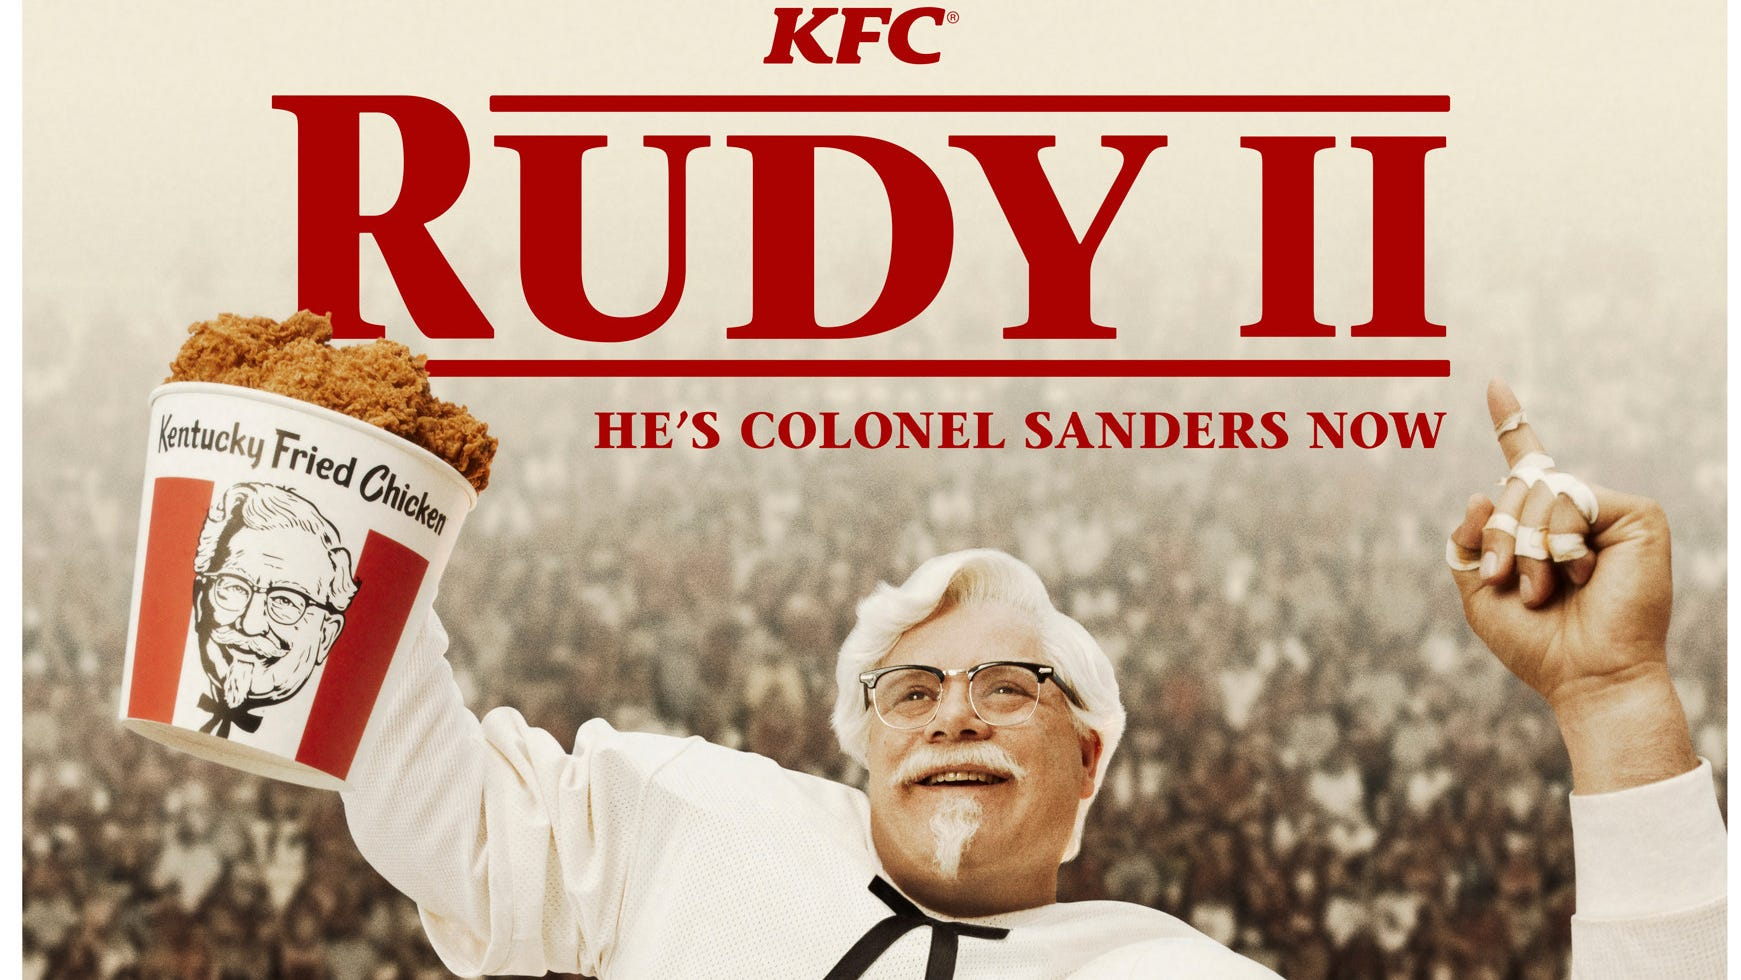 Celebrity In New Kfc Christmas Commercial 2020 Rudy is back! KFC picks title character actor to play Colonel Sanders